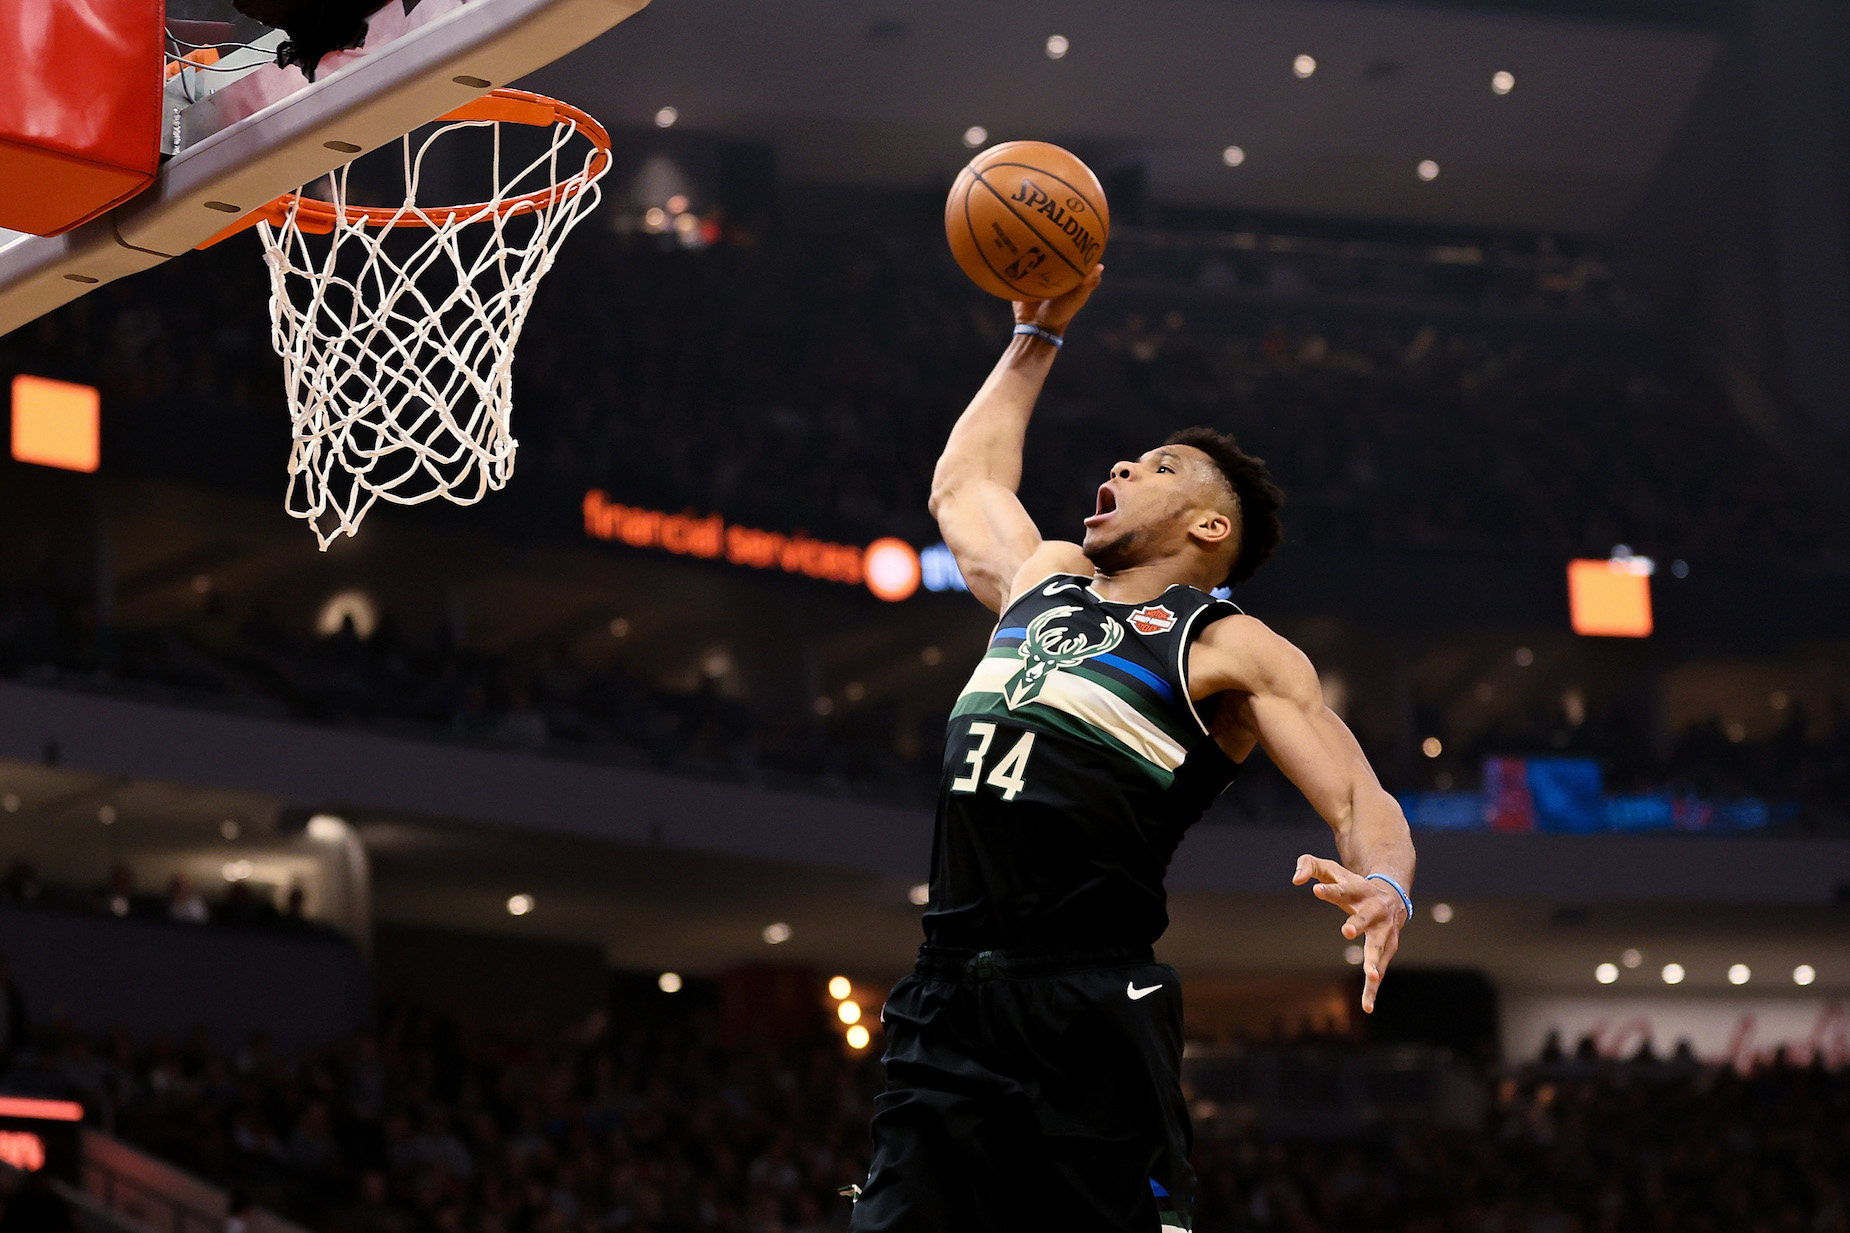 According to his Player Efficiency Rating, Giannis Antetokounmpo just finished the greatest season in modern NBA history.